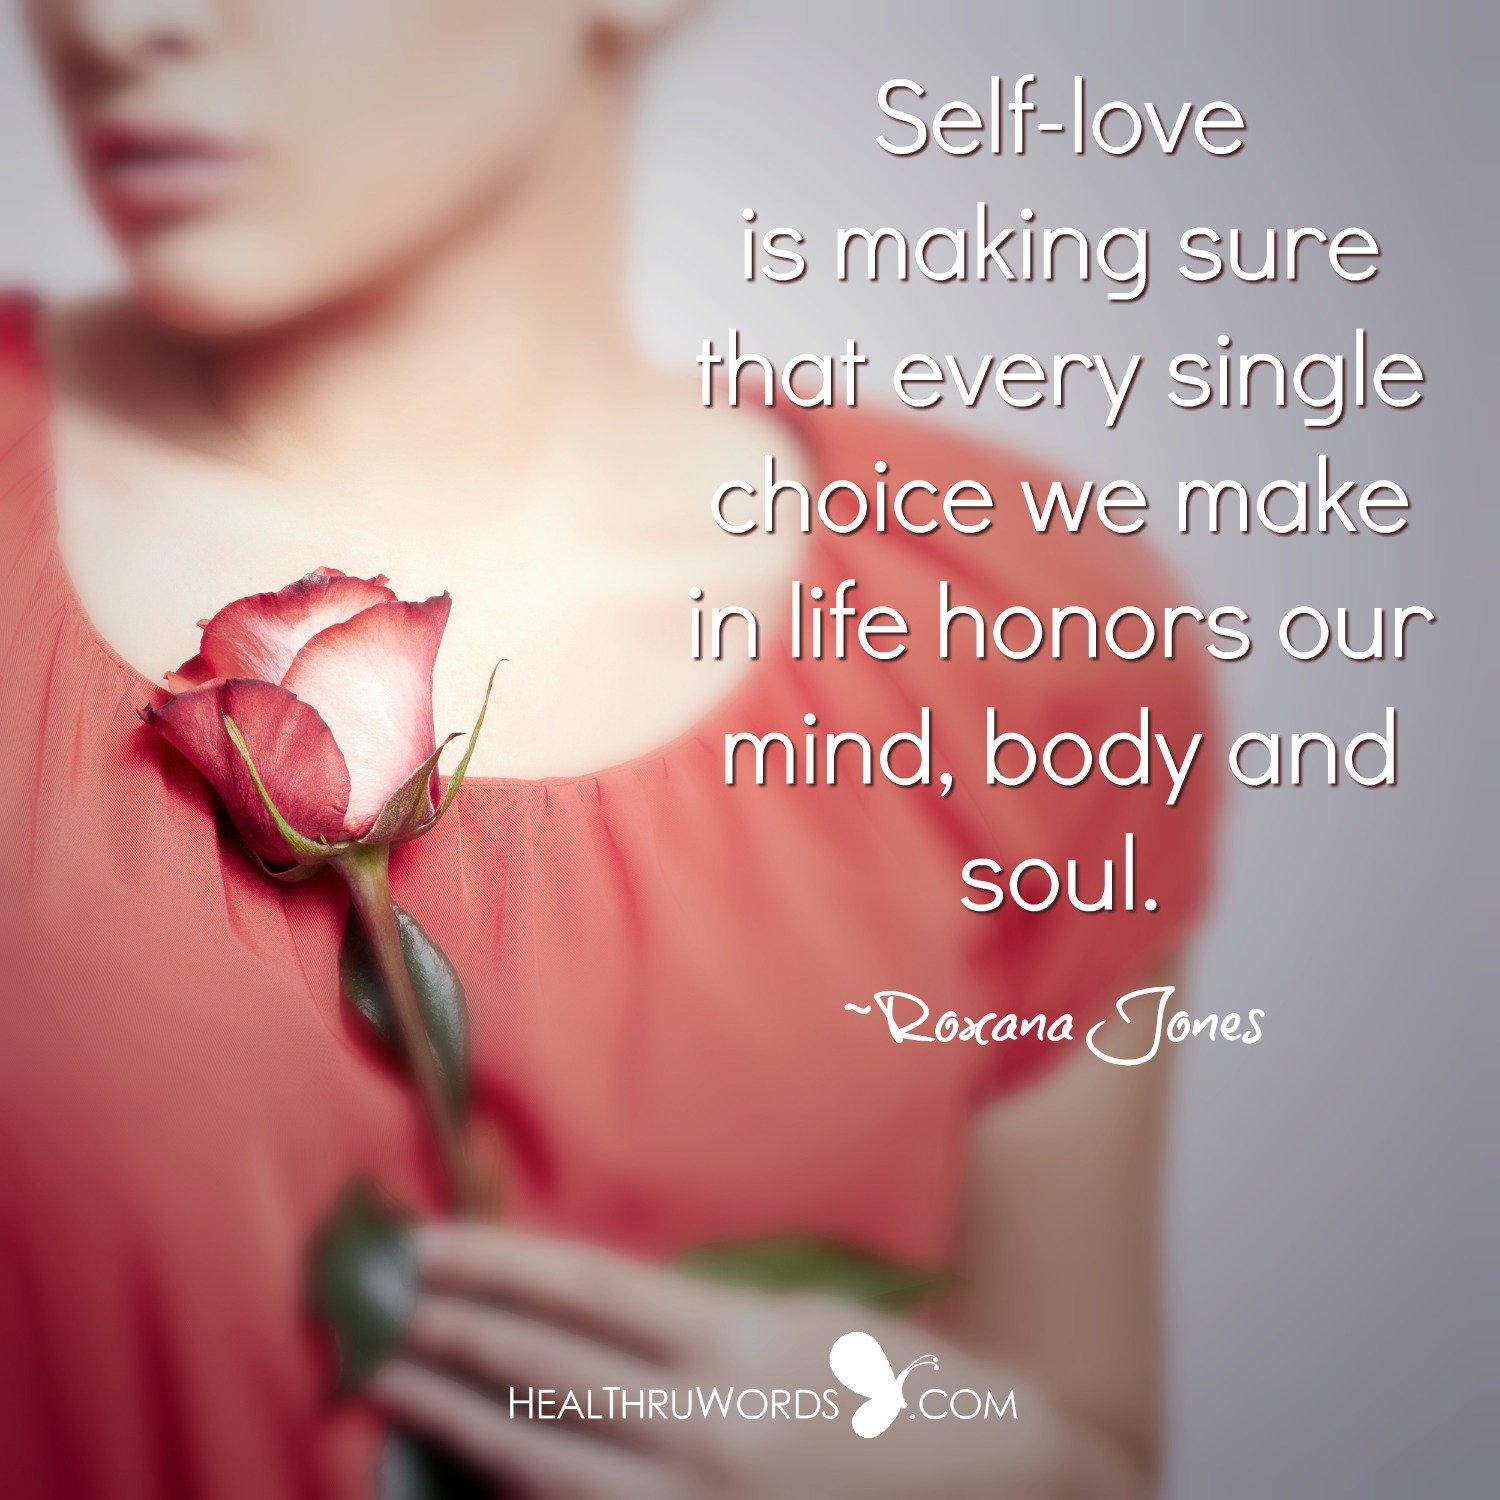 The Meaning of Self-love - Inspirational Images and Quotes - photo#12